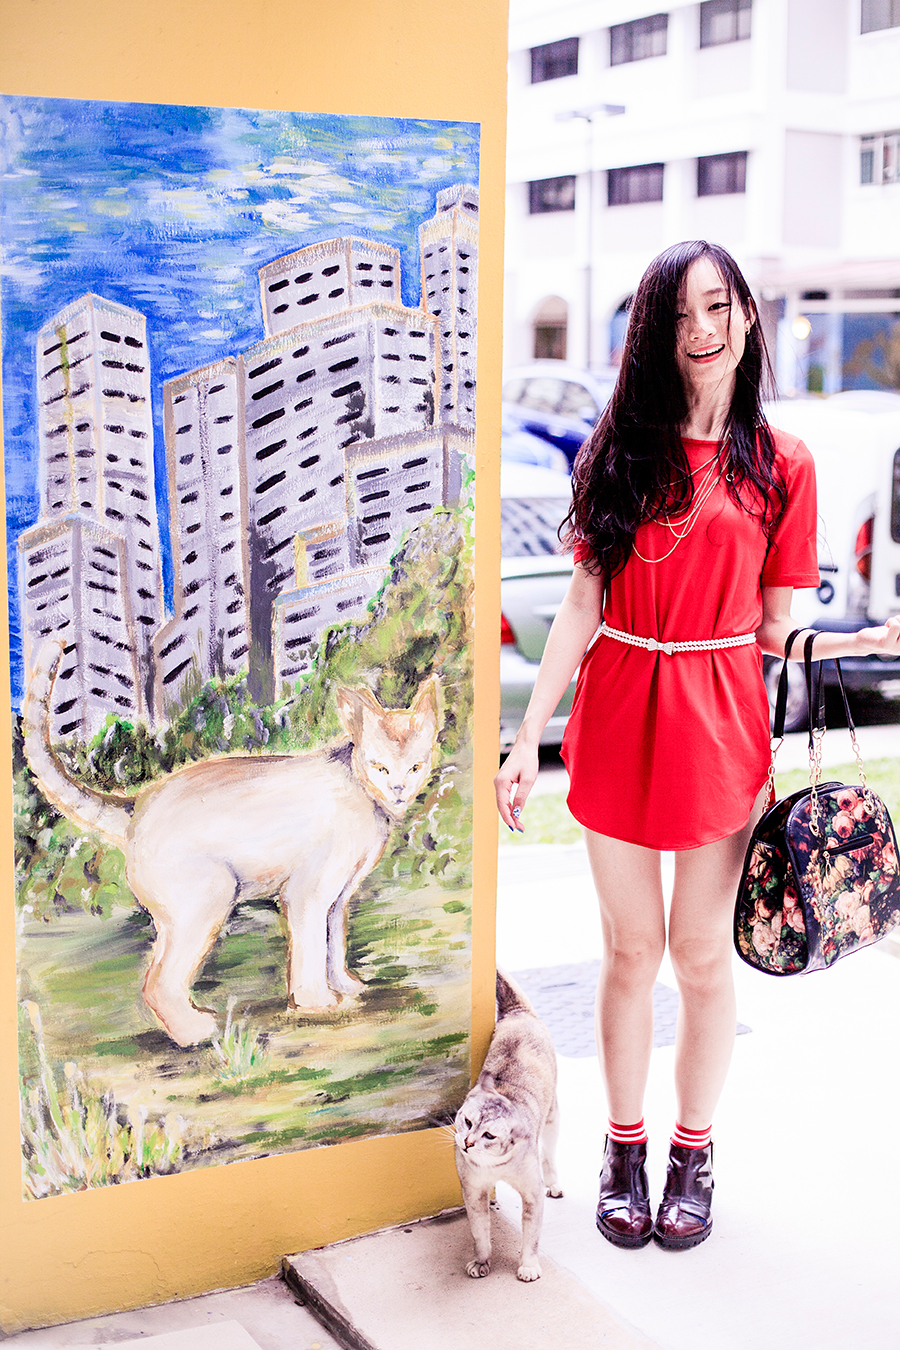 Bonding with the neighbourhood cat for my outfit photo wearing Crimson Red tunic dress for Chinese New Year of the Monkey.